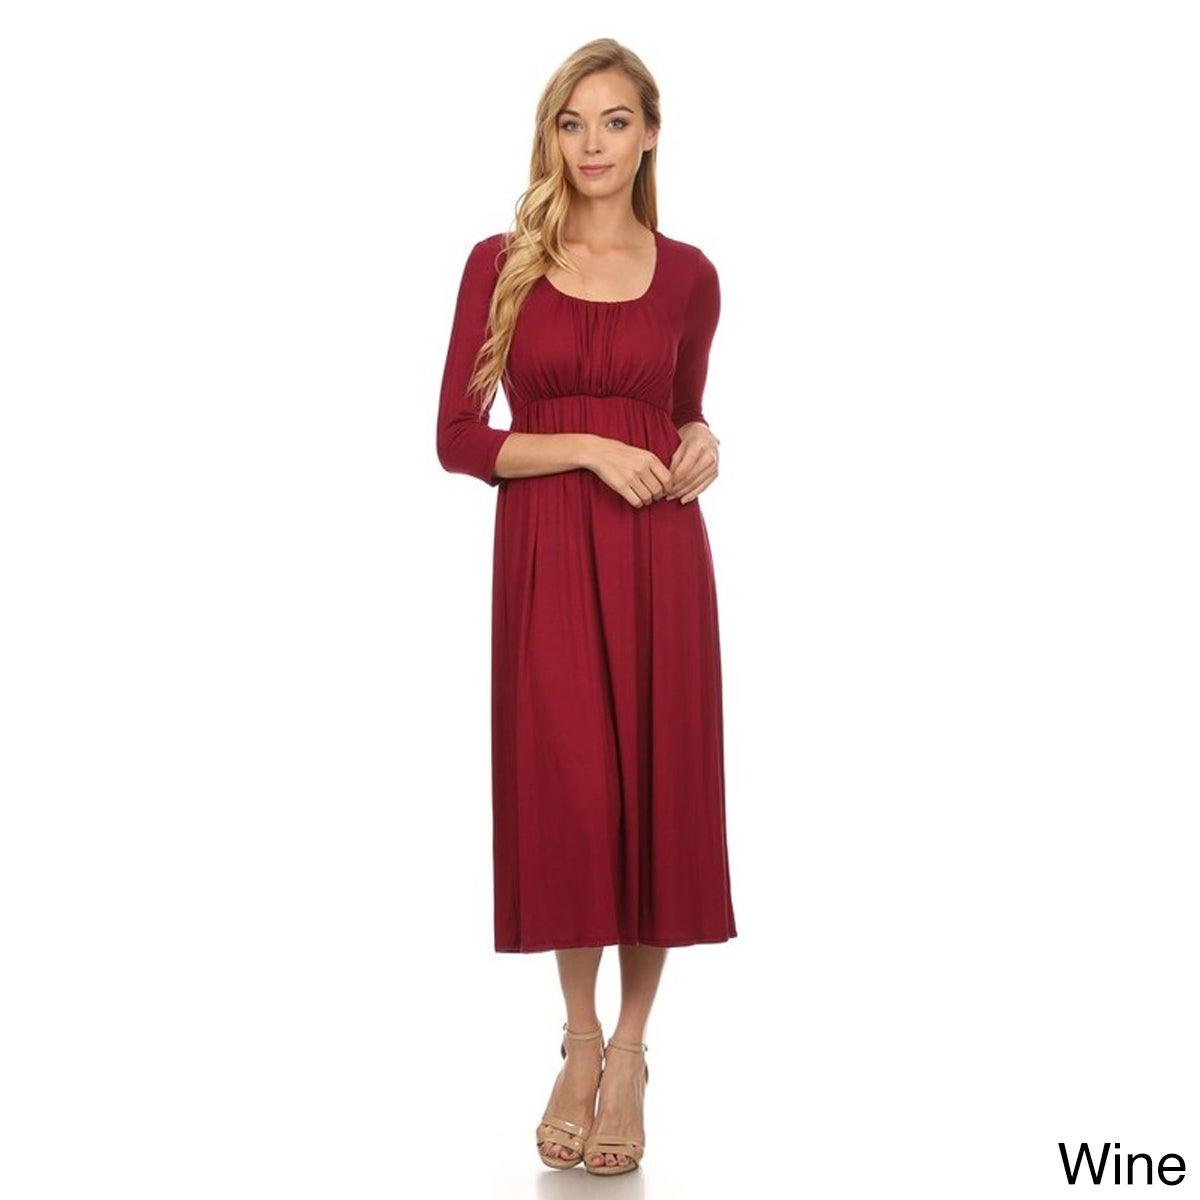 ce45ff716acc Shop Women's Solid-color Rayon/Spandex Maxi Dress - Free Shipping On Orders  Over $45 - Overstock - 12637474